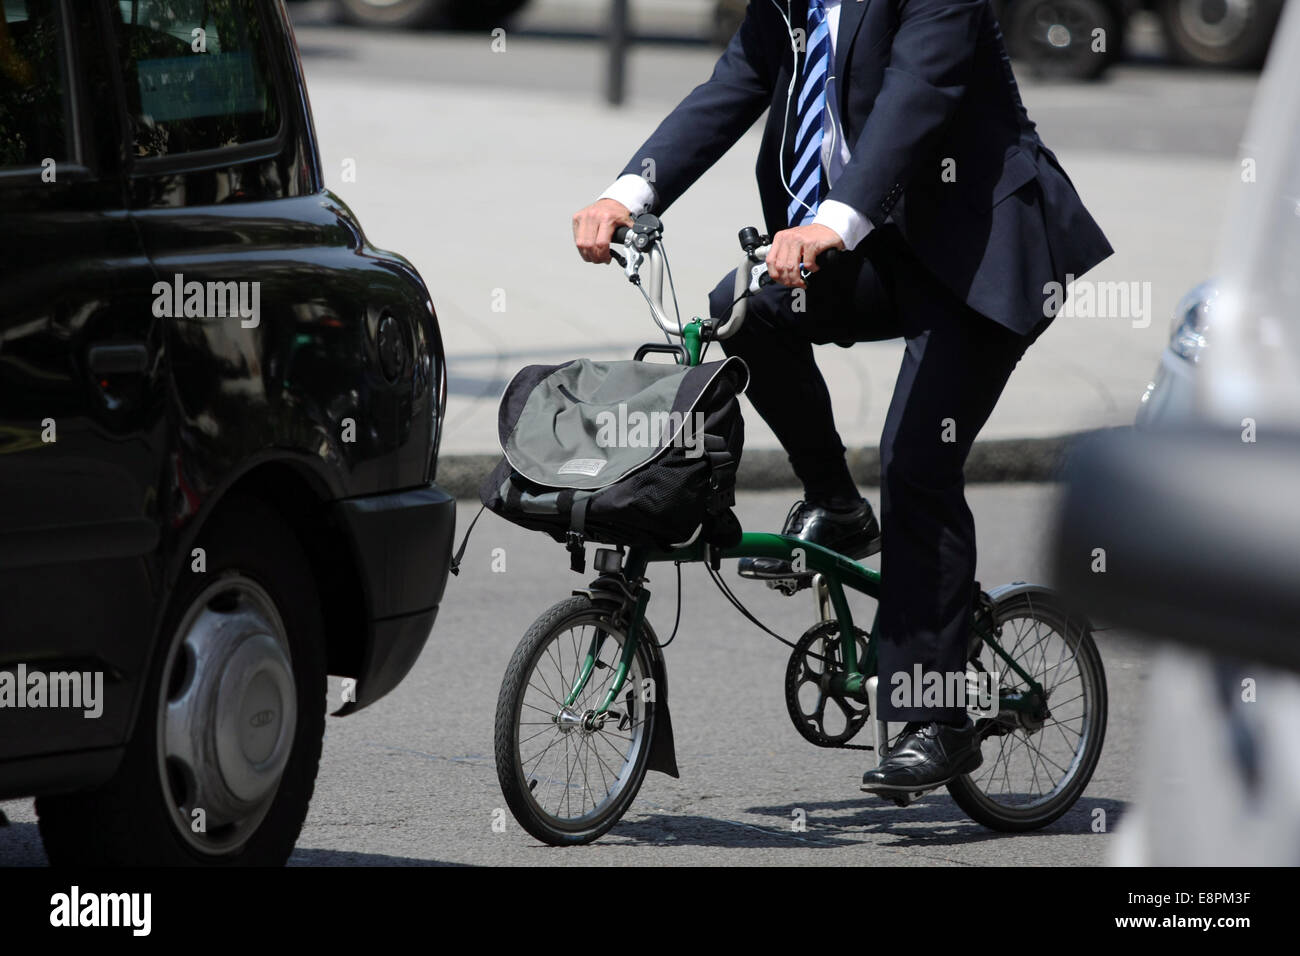 A city gent rides a folding cycle in London traffic - Stock Image